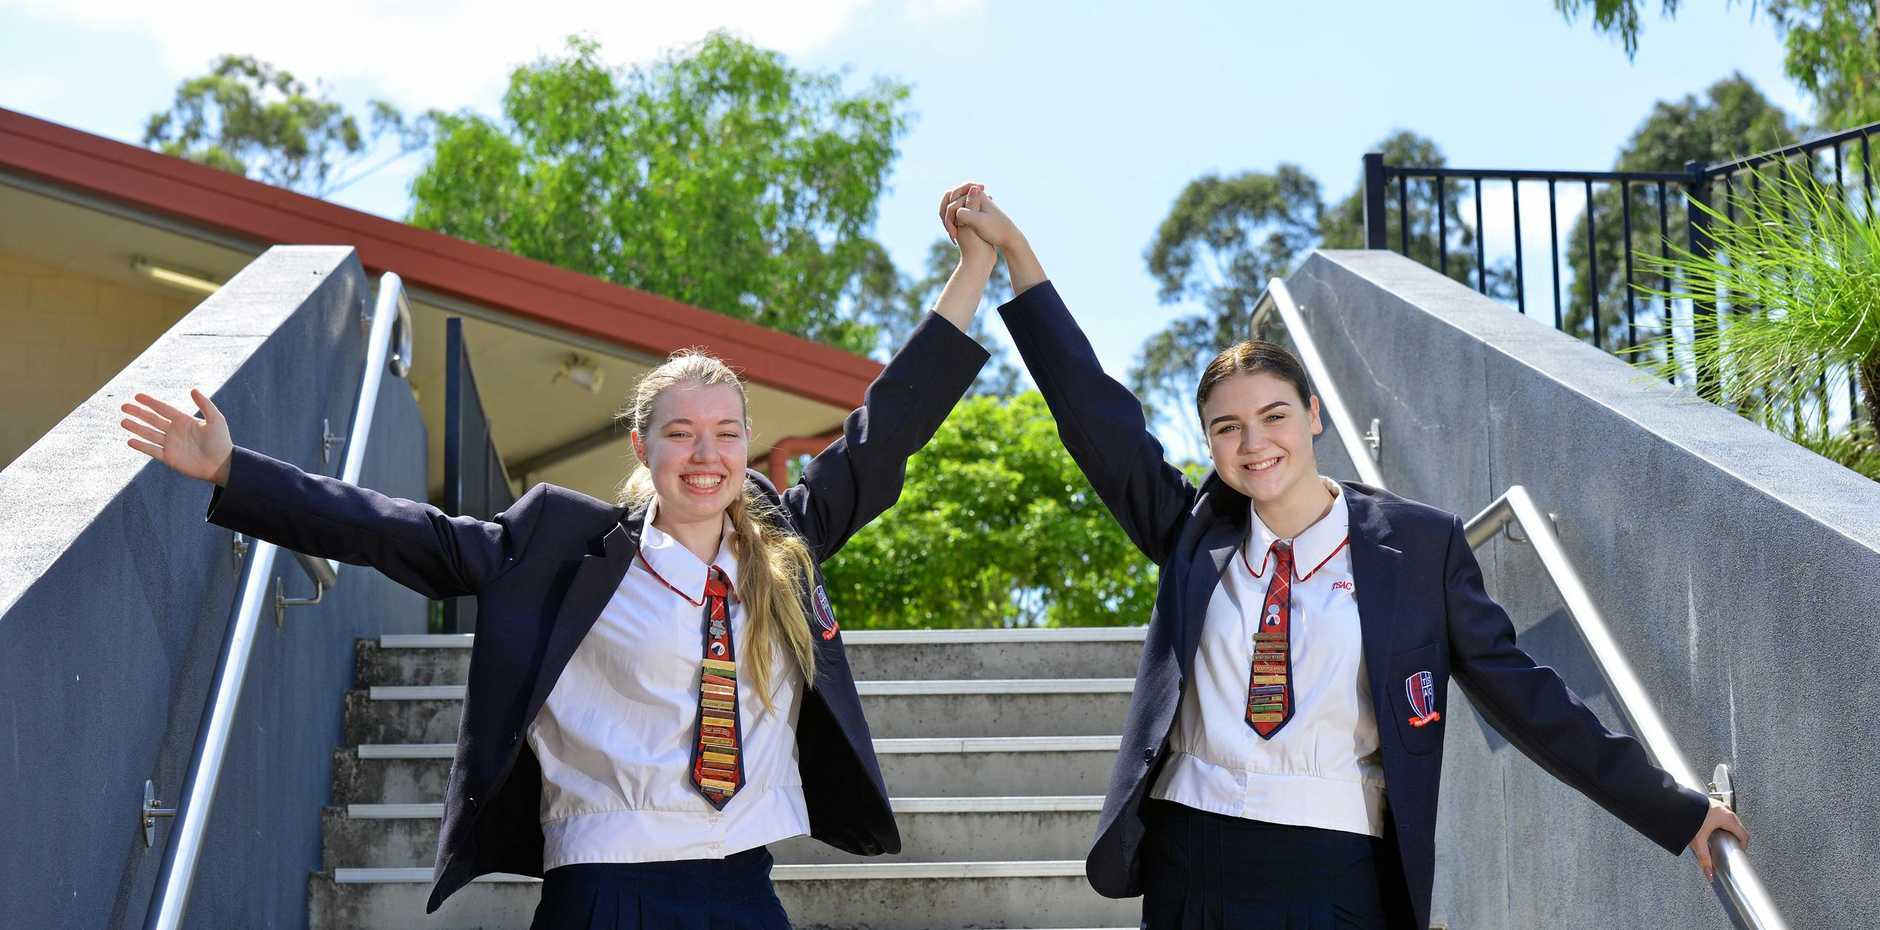 The Springfield Anglican College students Tiana Hogrefe (left) and Erin Clark both achieved excellent OP results to complete their year 12 studies.